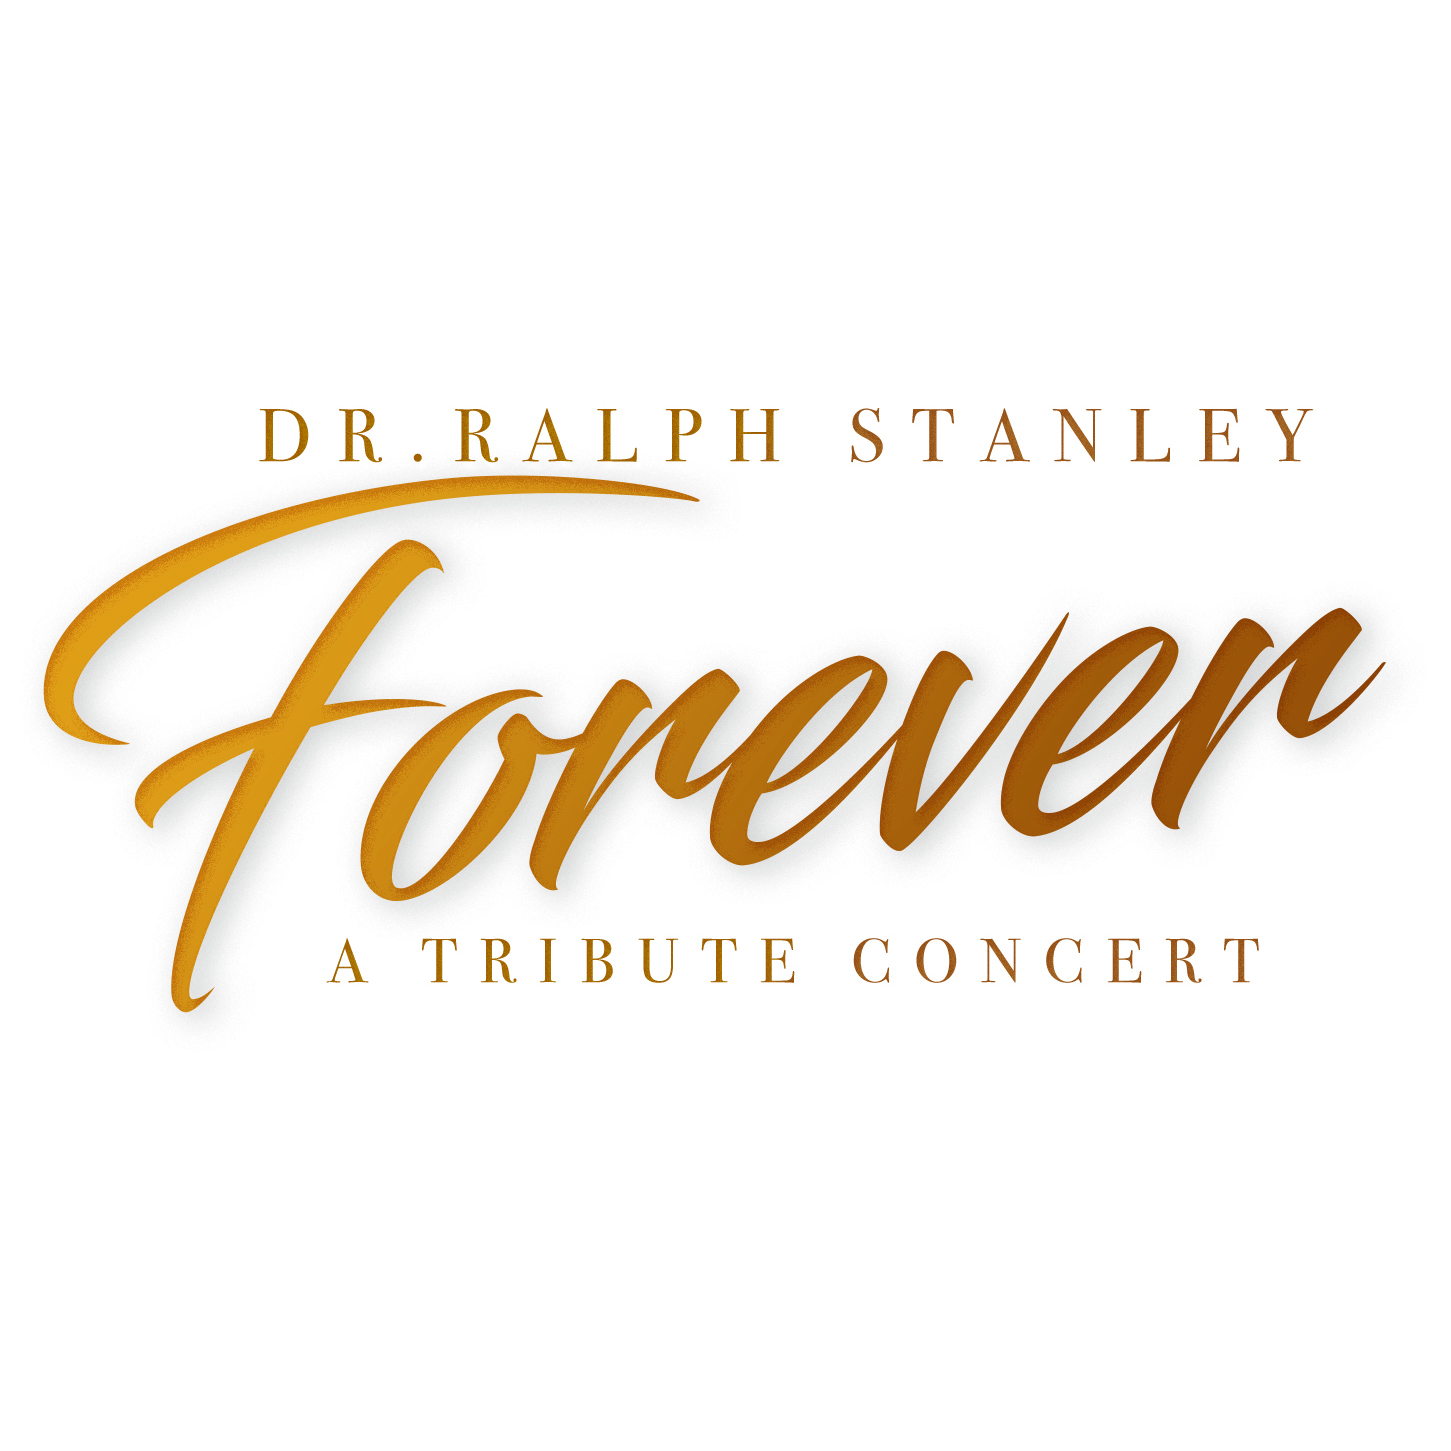 DR. RALPH STANLEY TRIBUTE